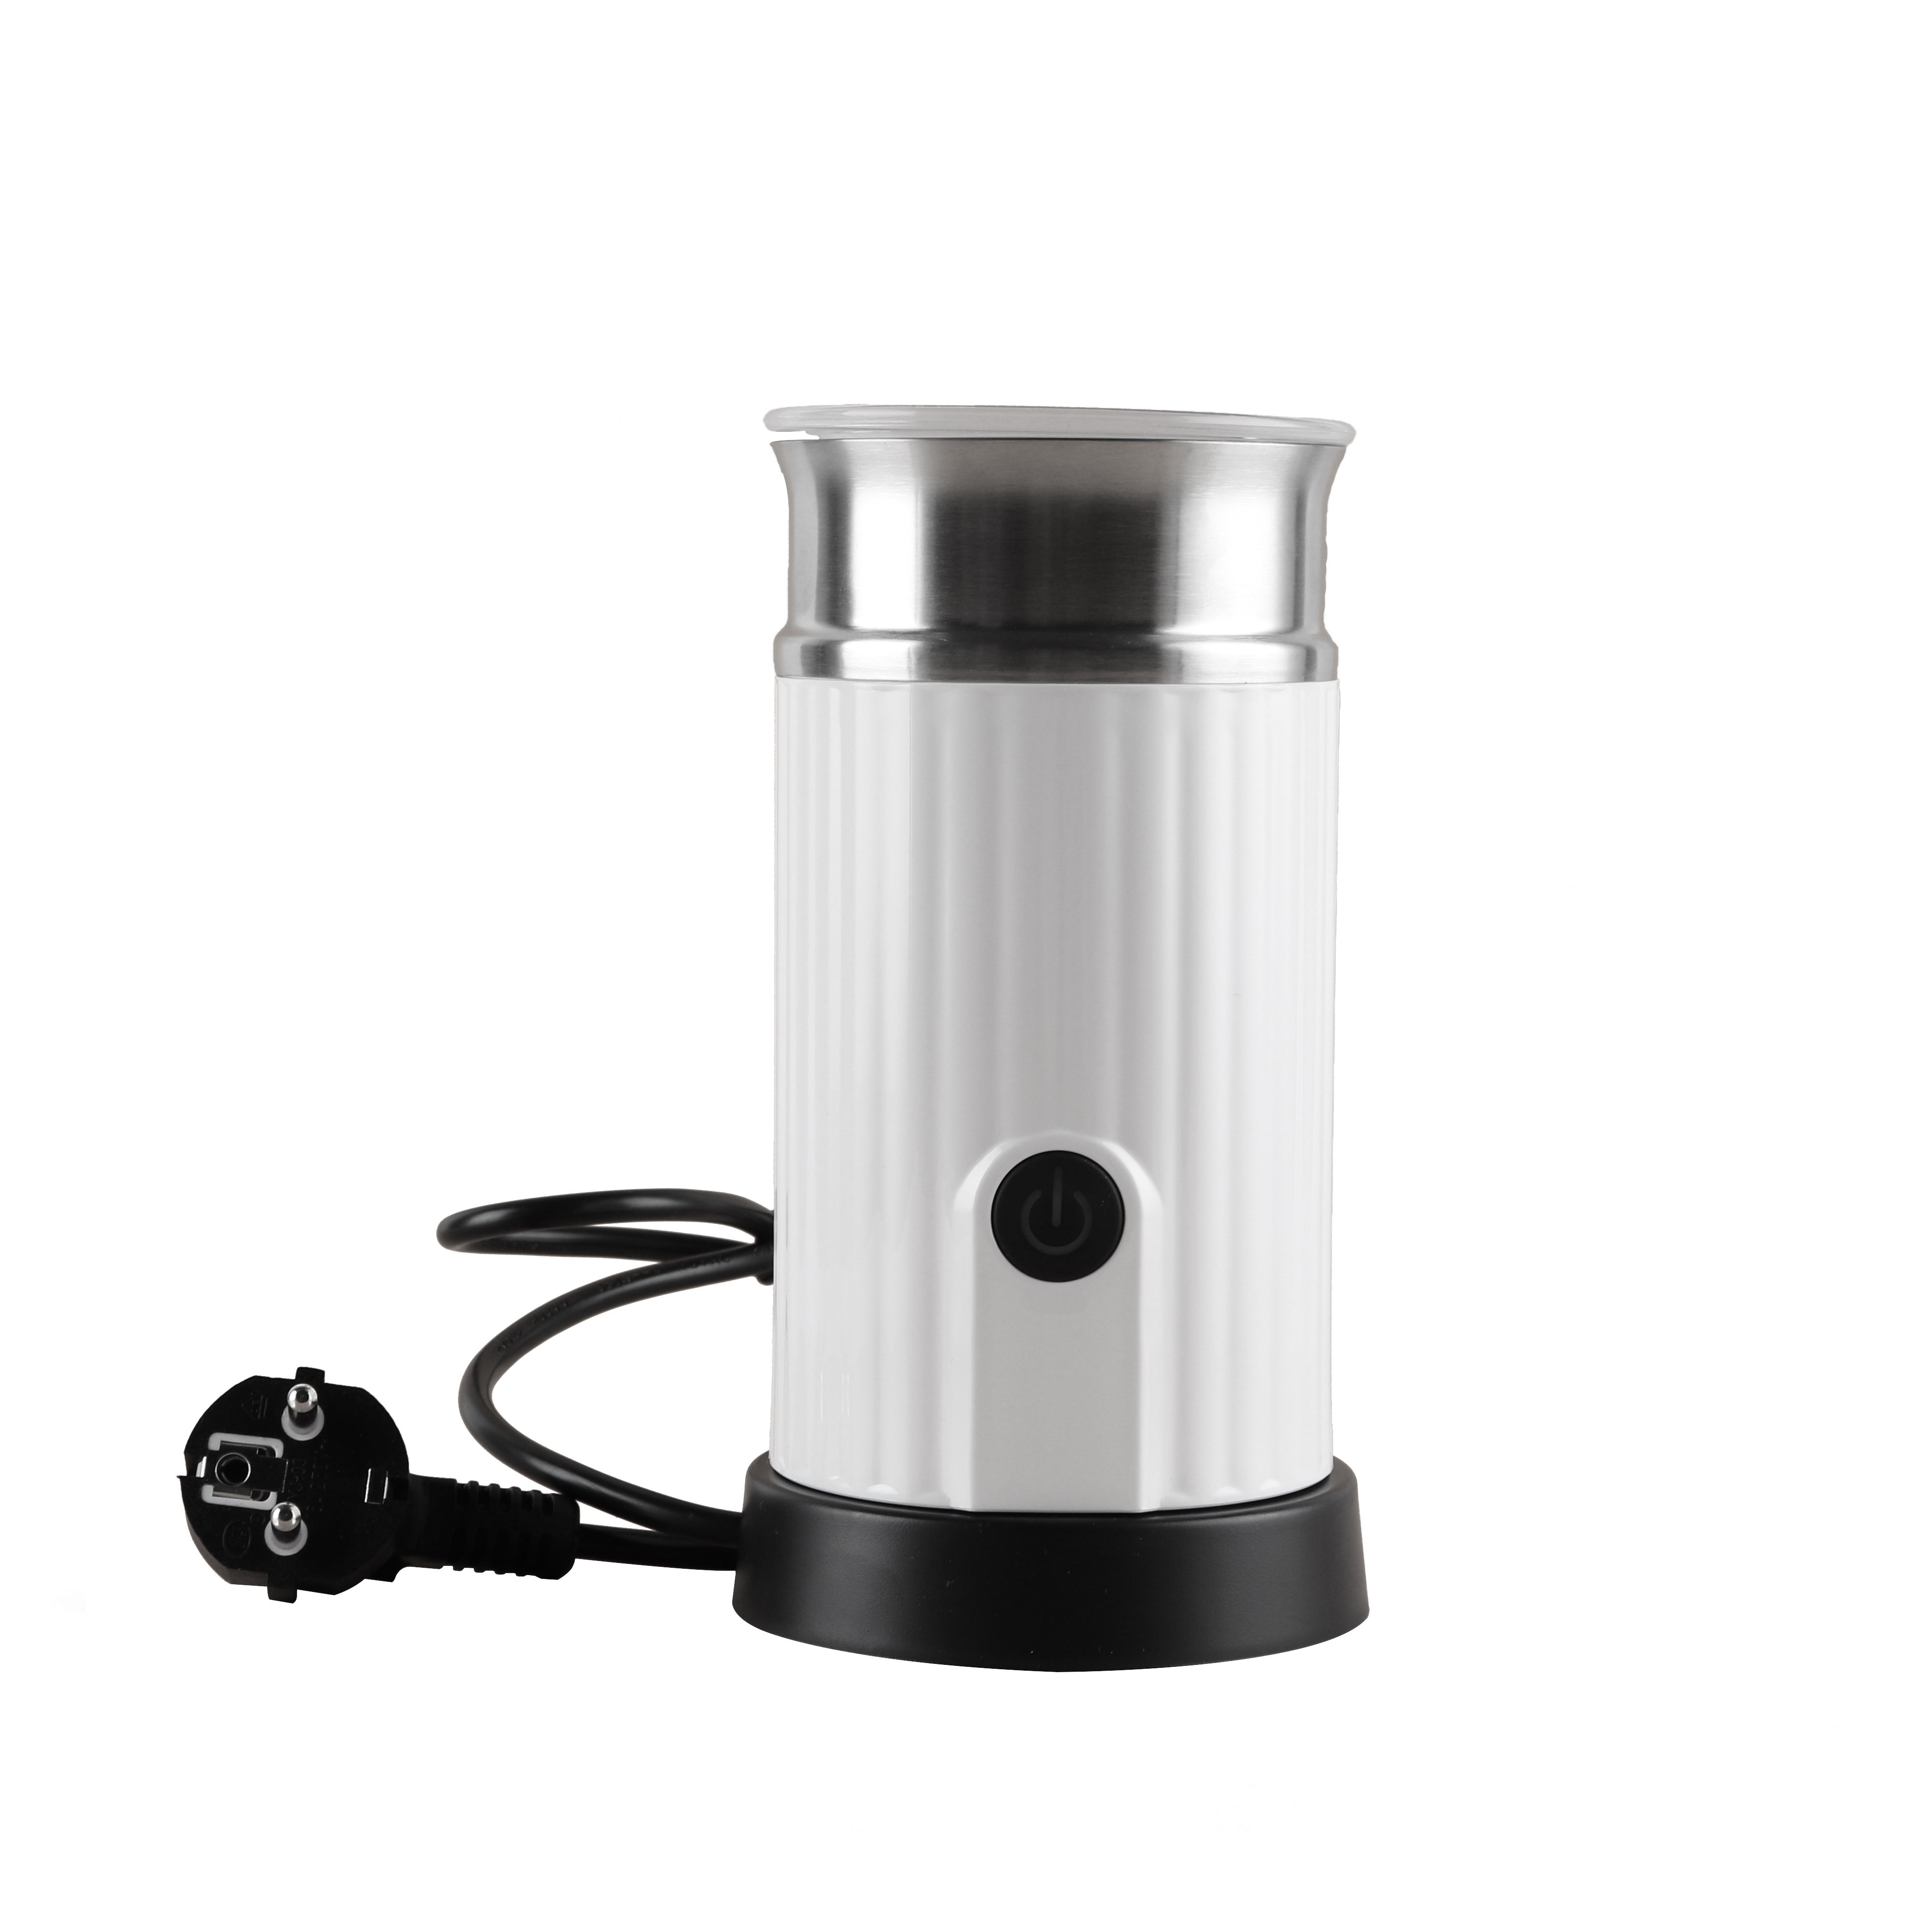 Match nespresso coffee maker milk frother